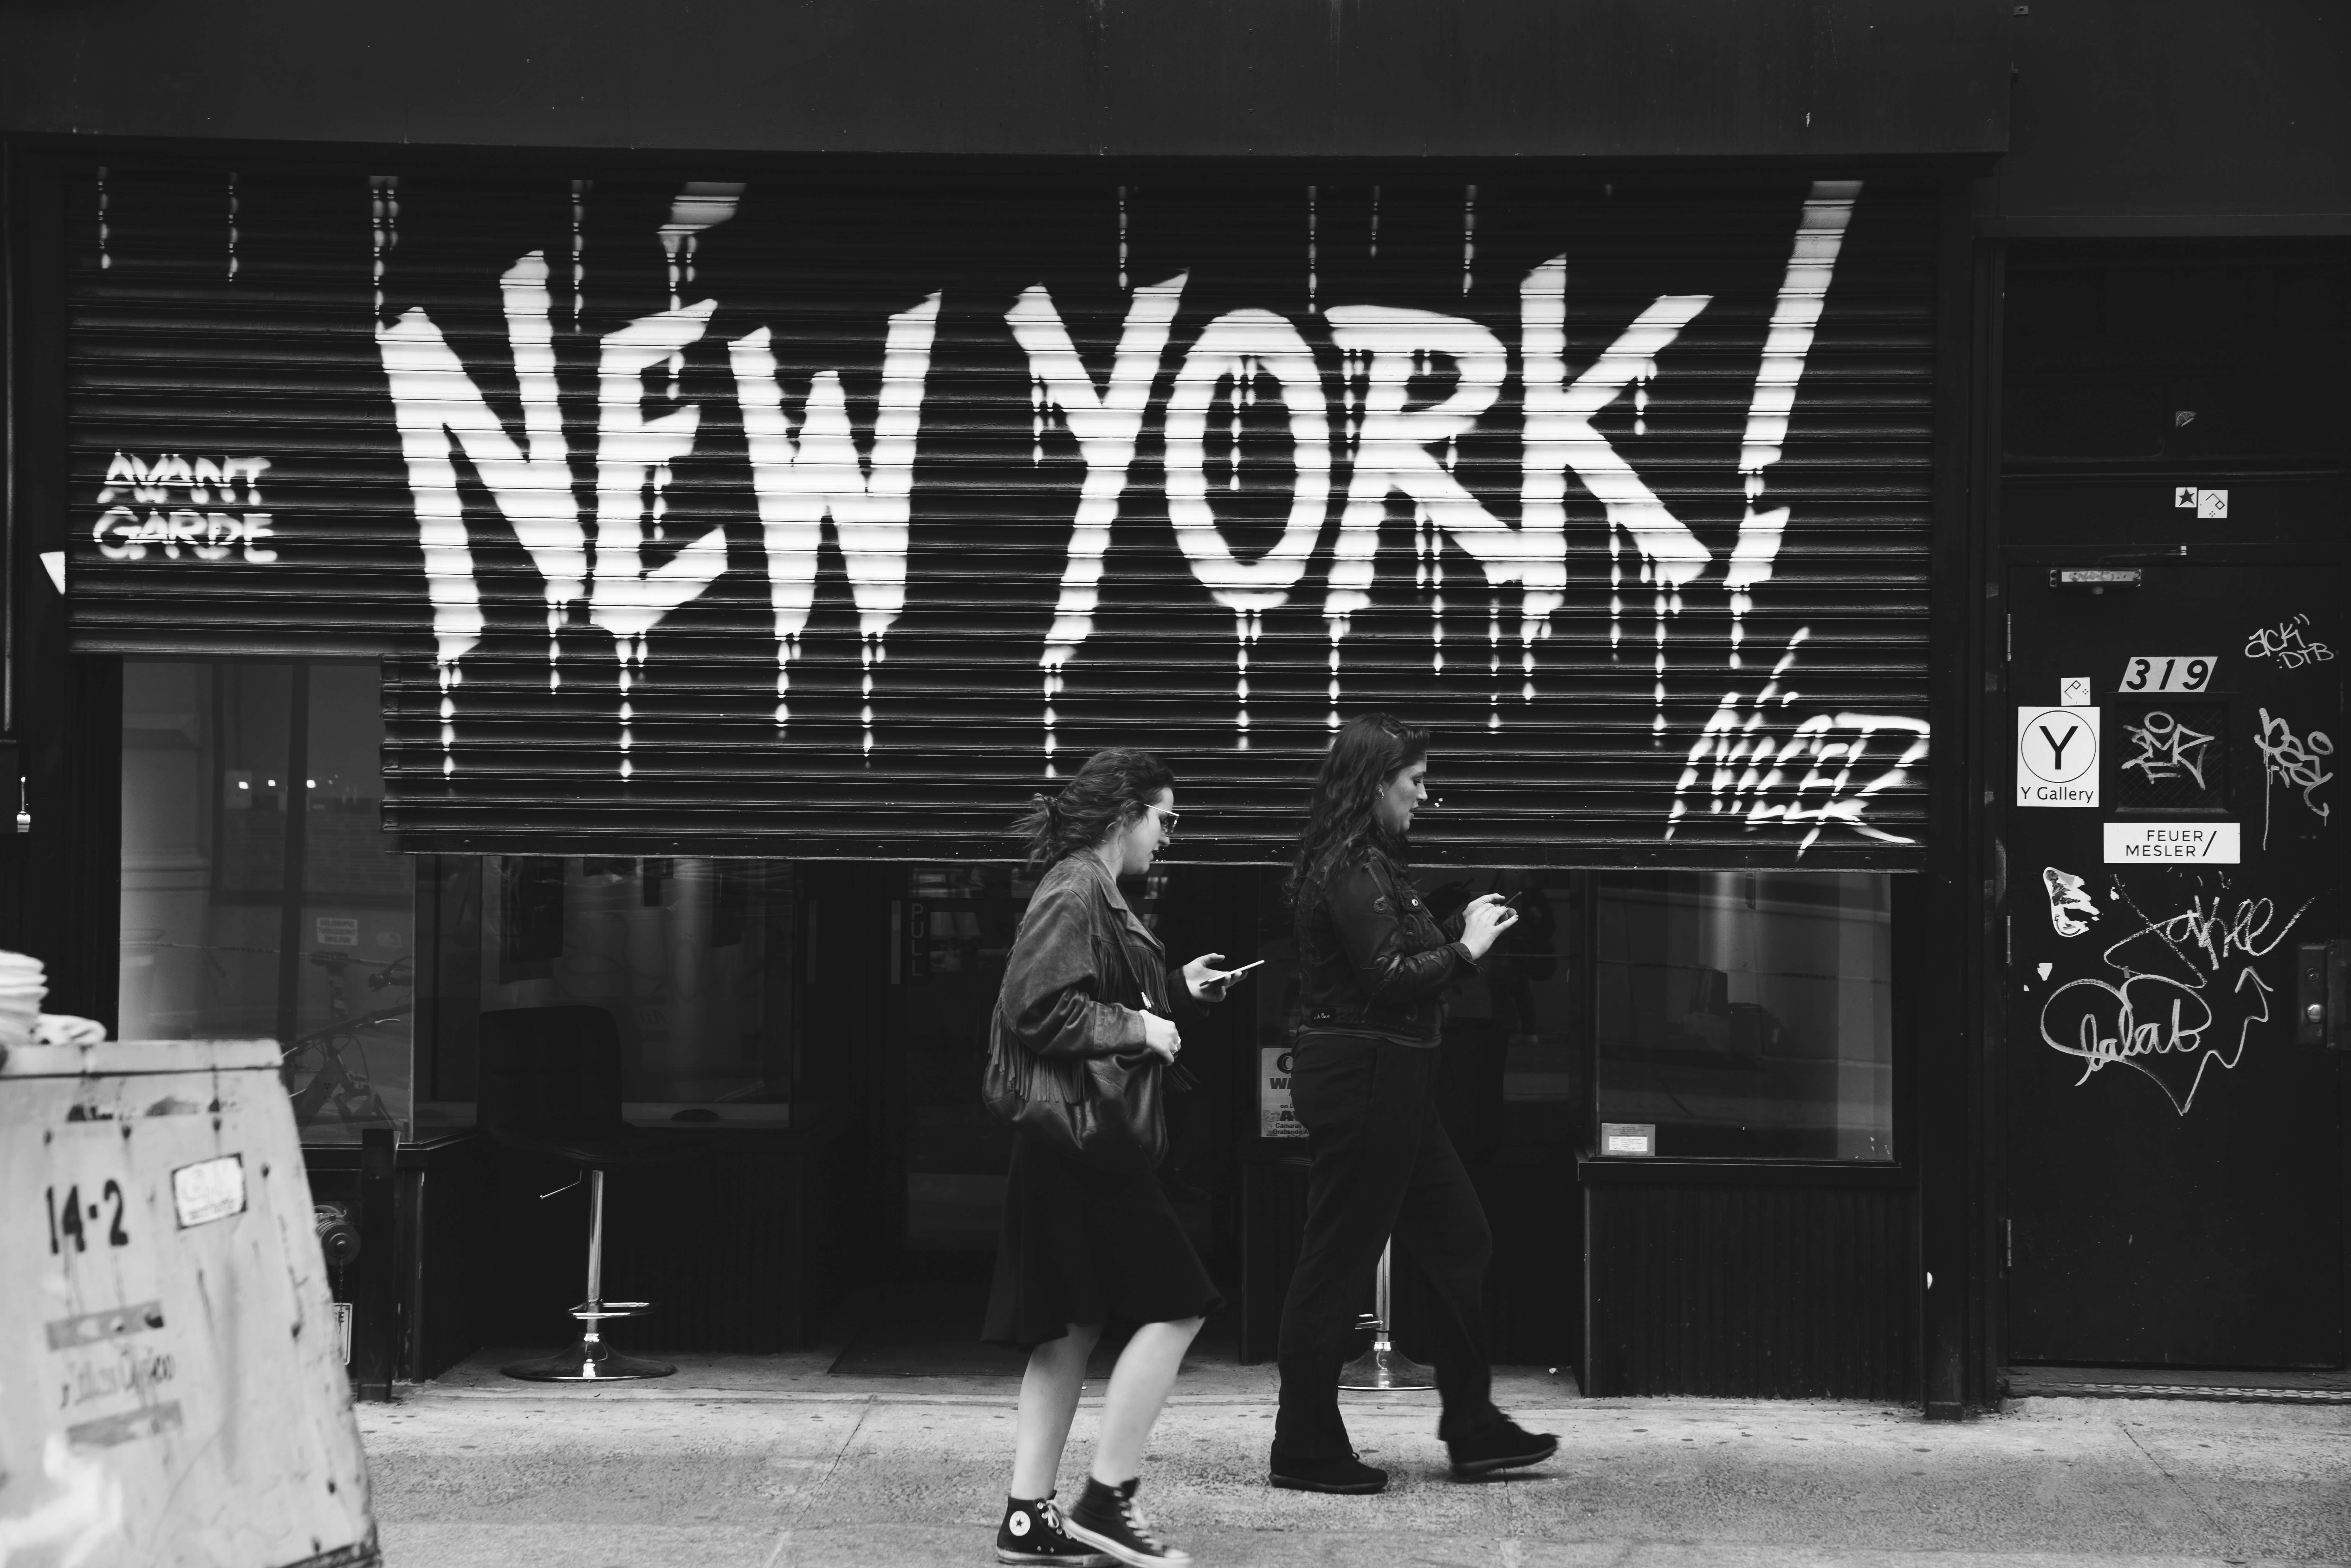 New York City black and white street art